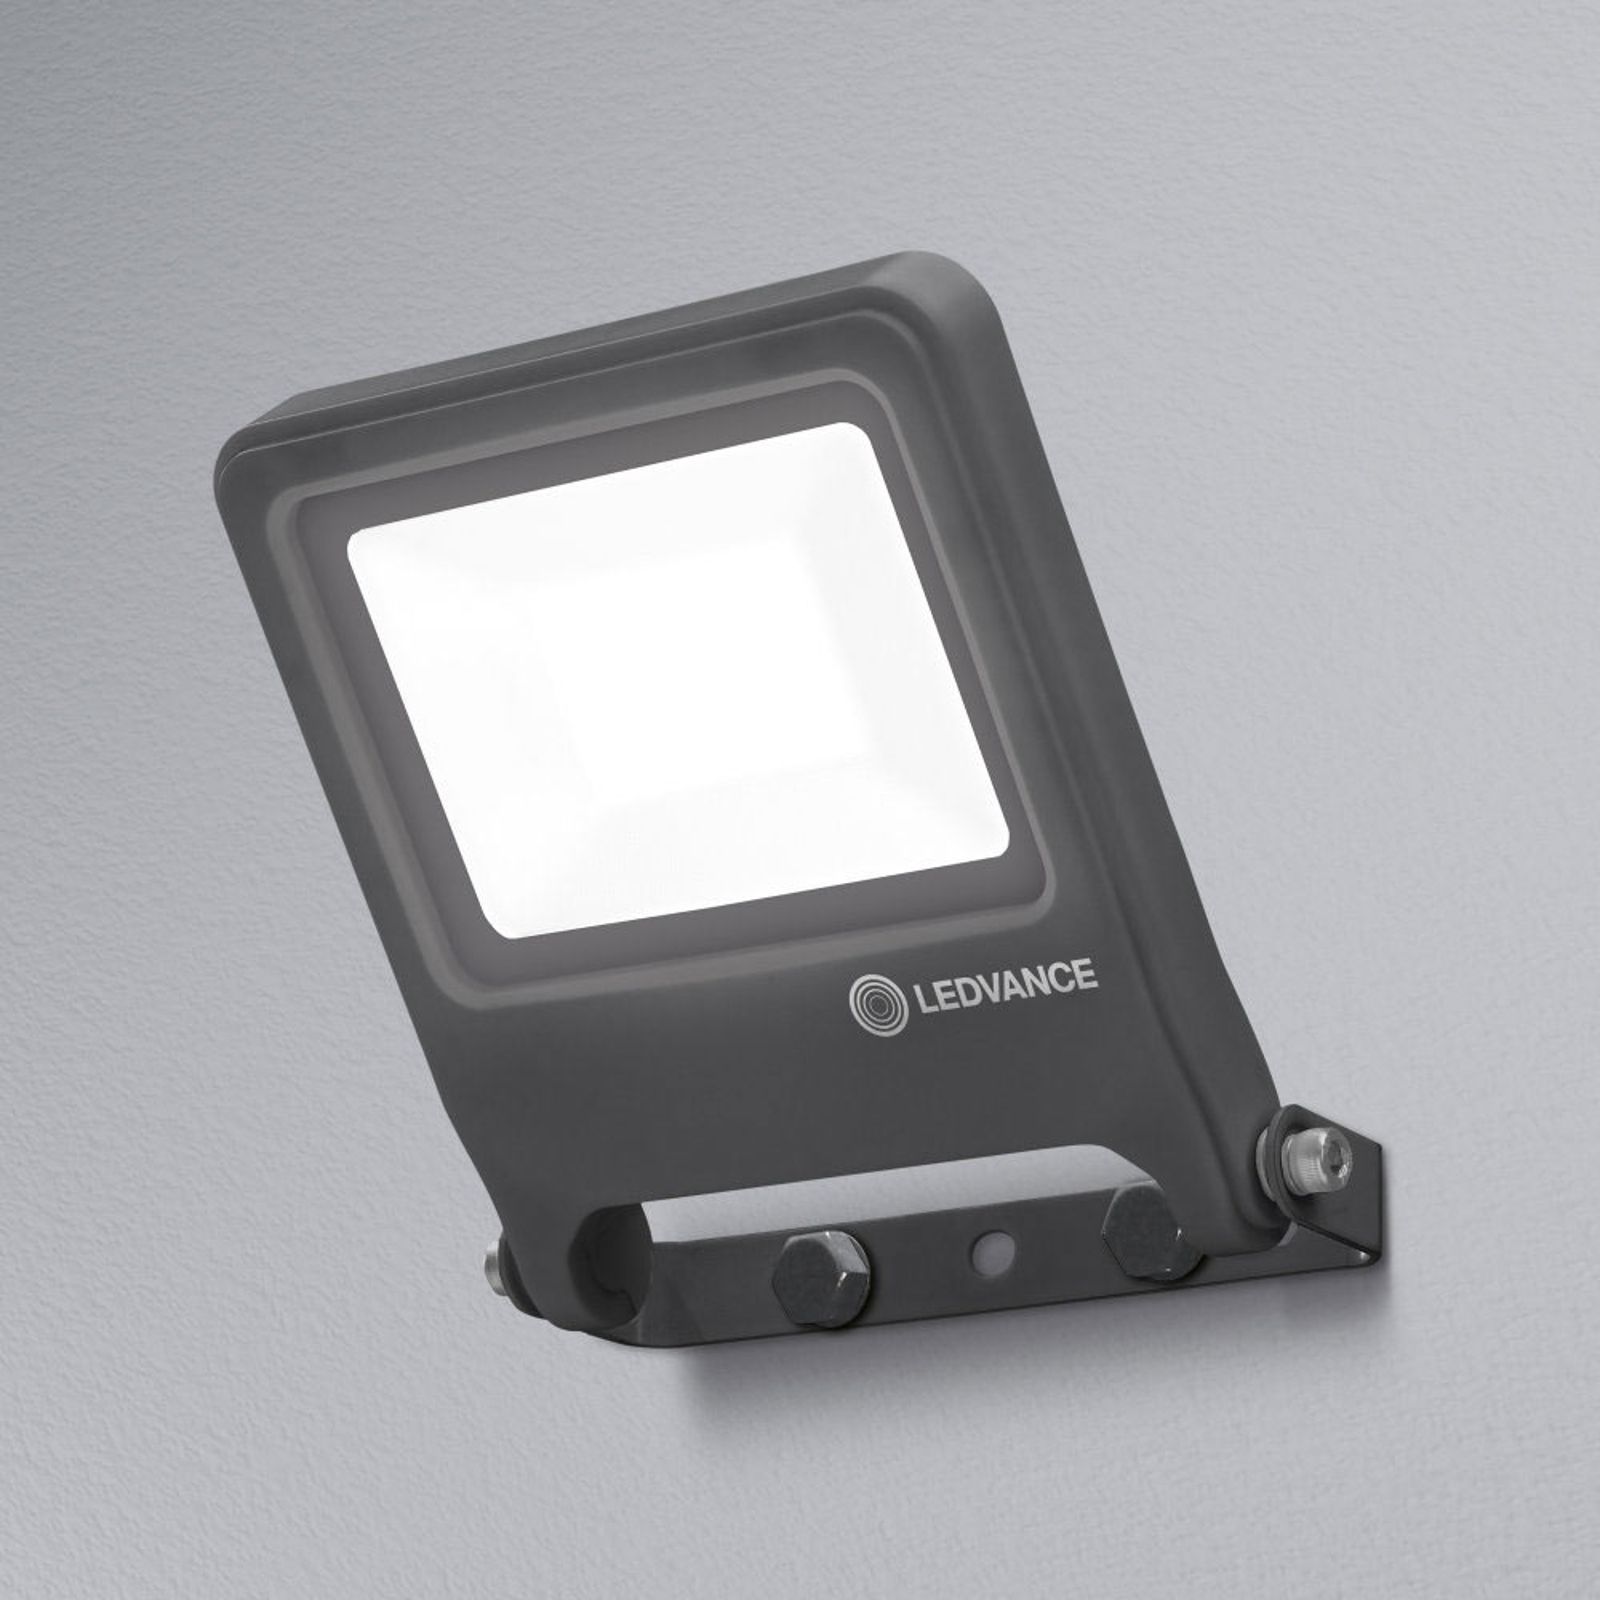 LEDVANCE Endura Floodlight LED buitenspot, 20 W